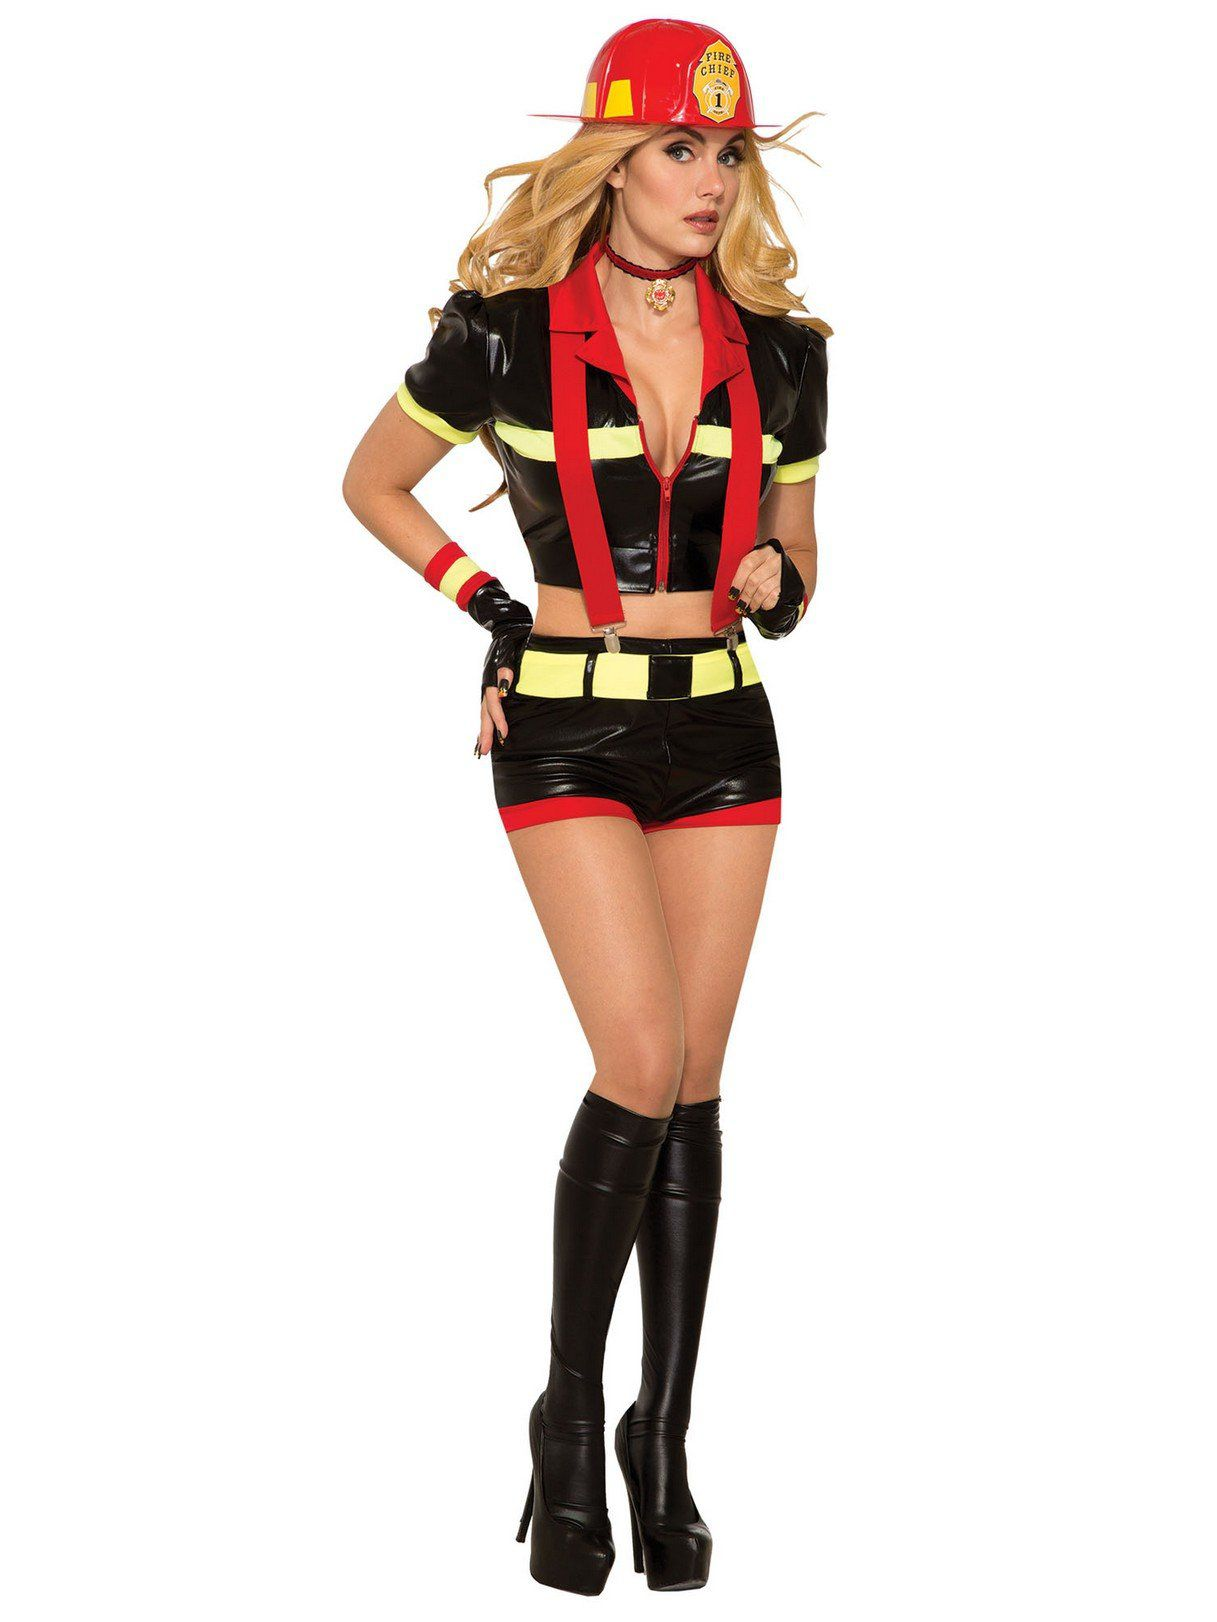 Porn sexy women costumes talented message recommend